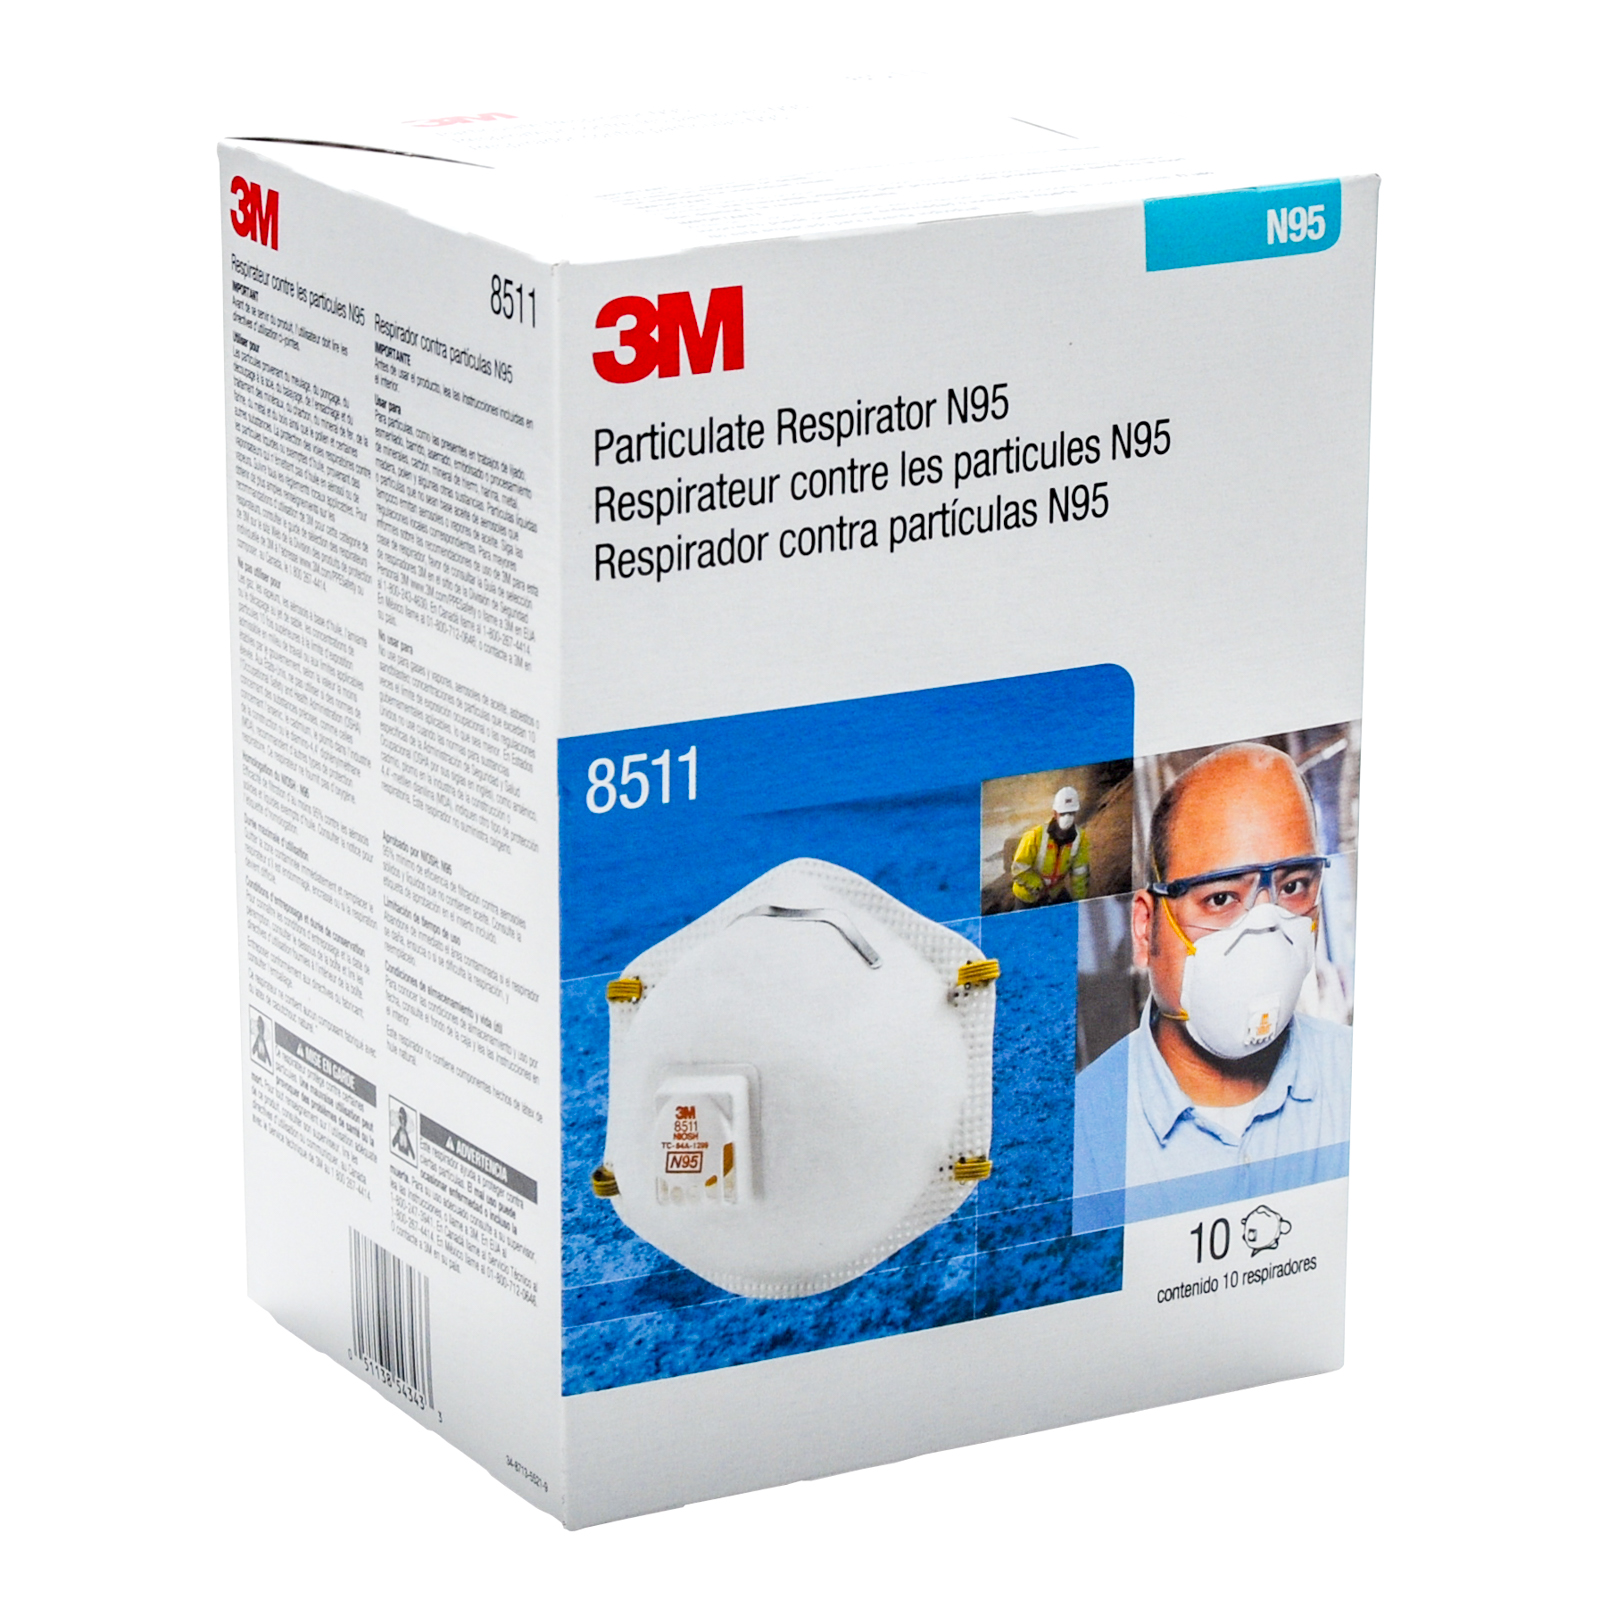 Industrial Respirator N95 3m amp; Mask Particulate 8511 Business